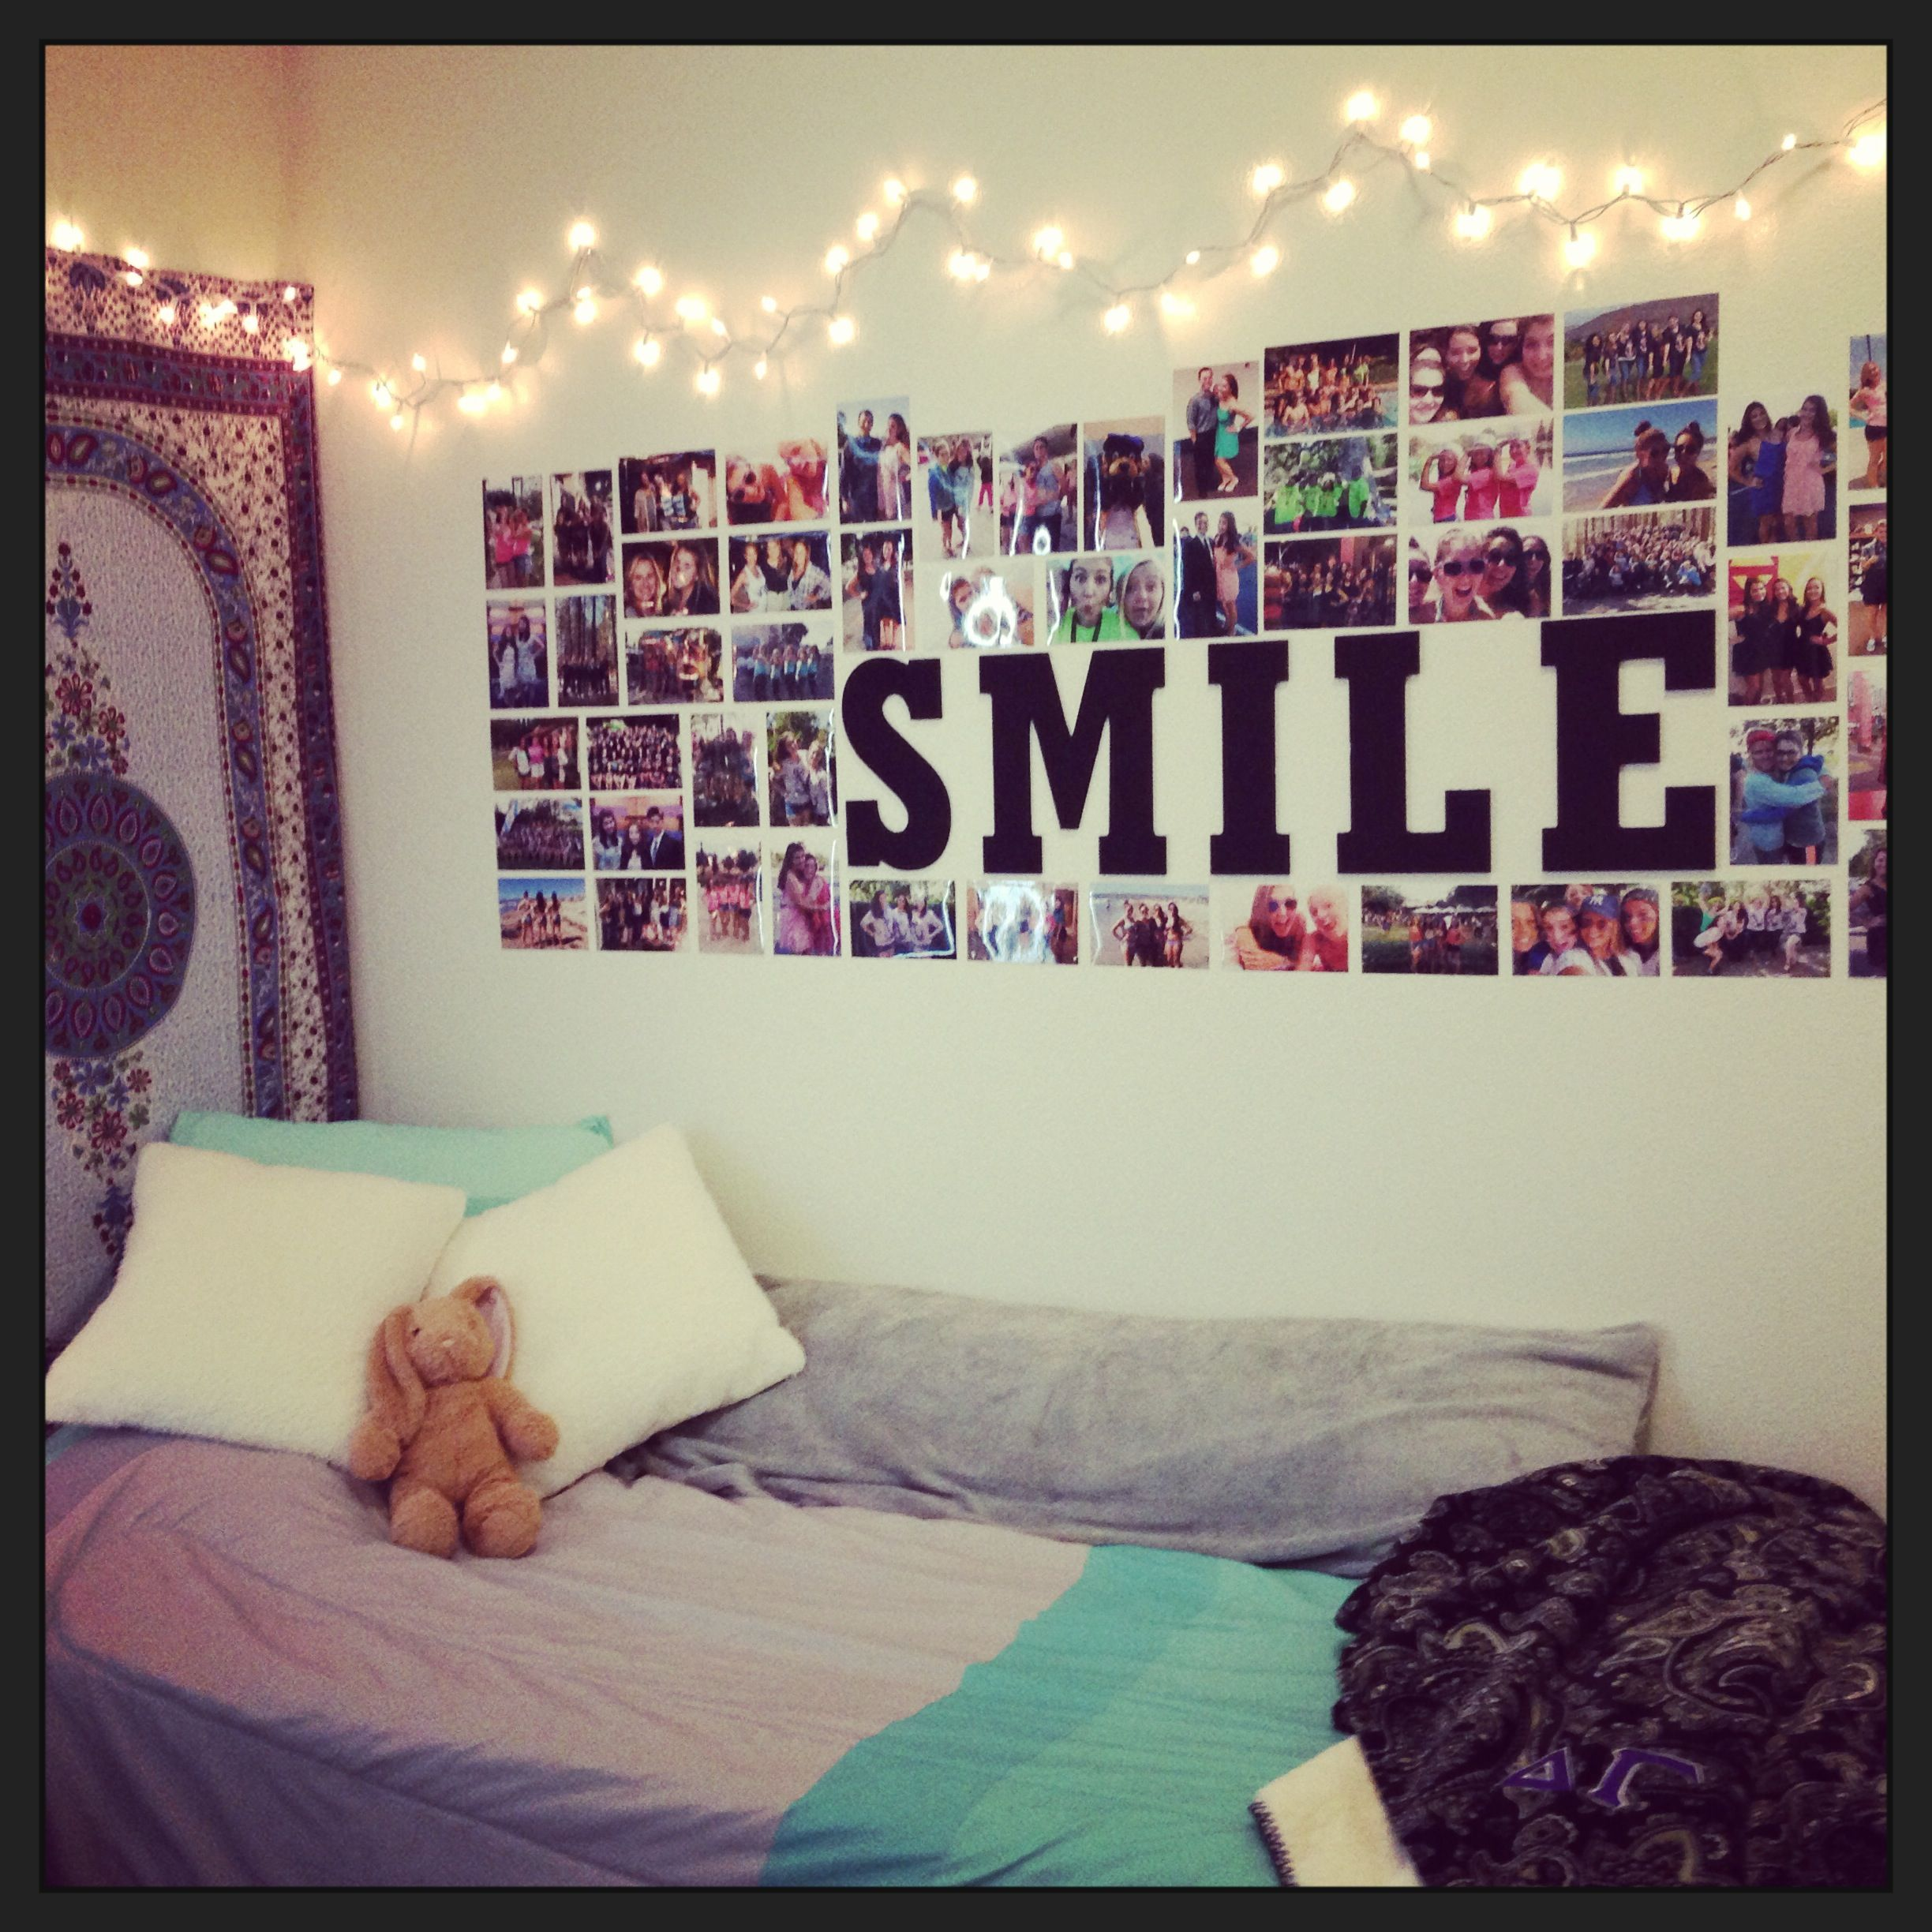 cute way to furnish your dorm room a cheap tapestry homemade painted wooden letters - Ways To Decorate A Bedroom